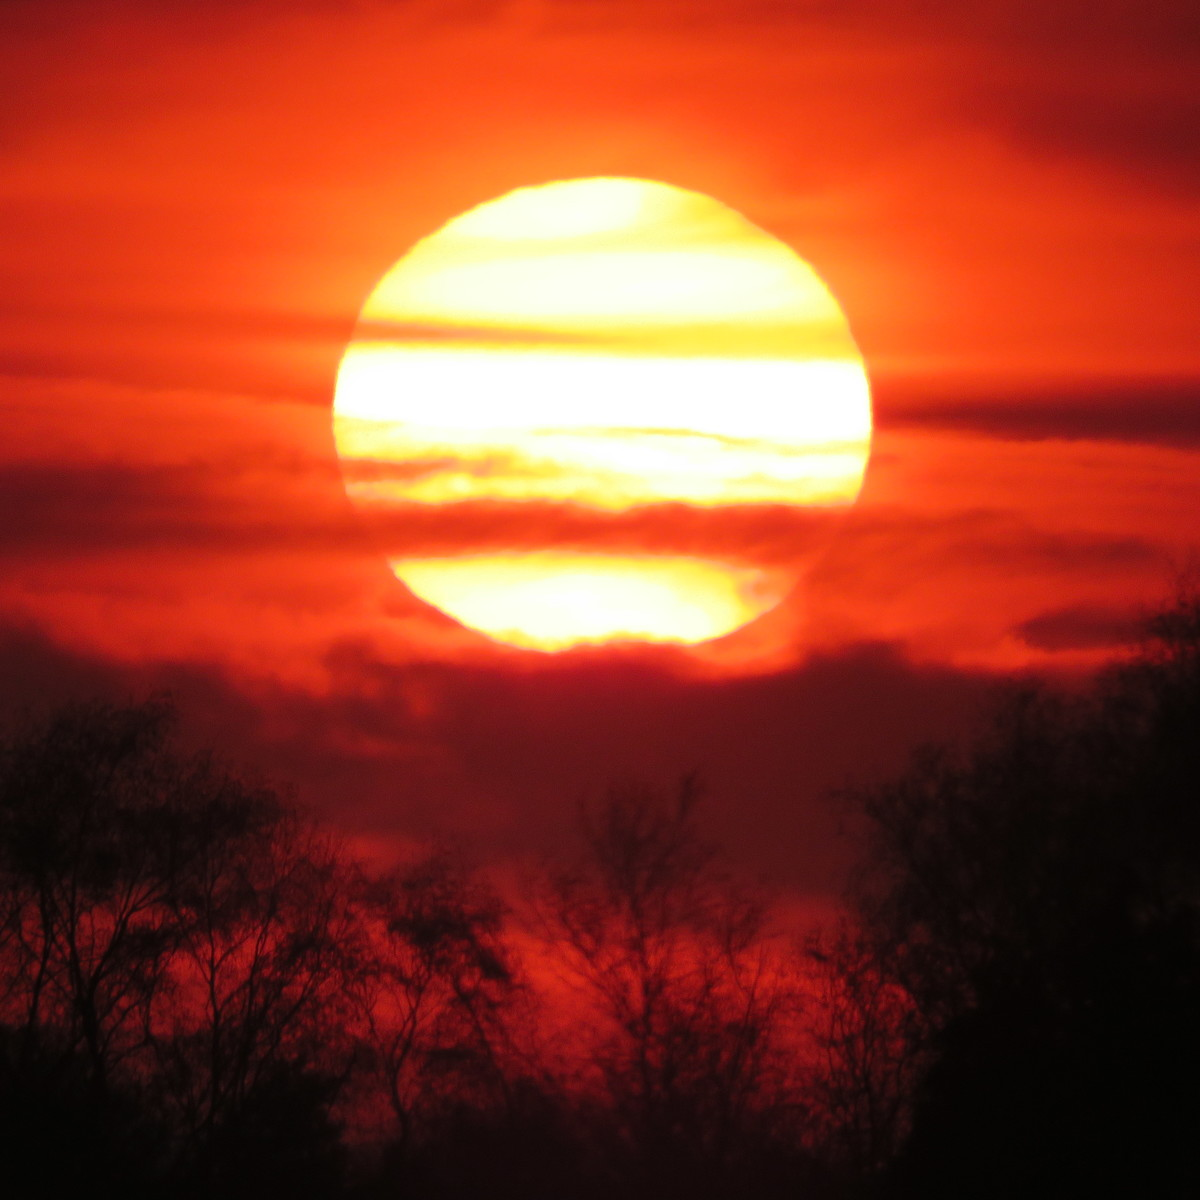 Sunset of 6th April 2019 from Irlam, UK